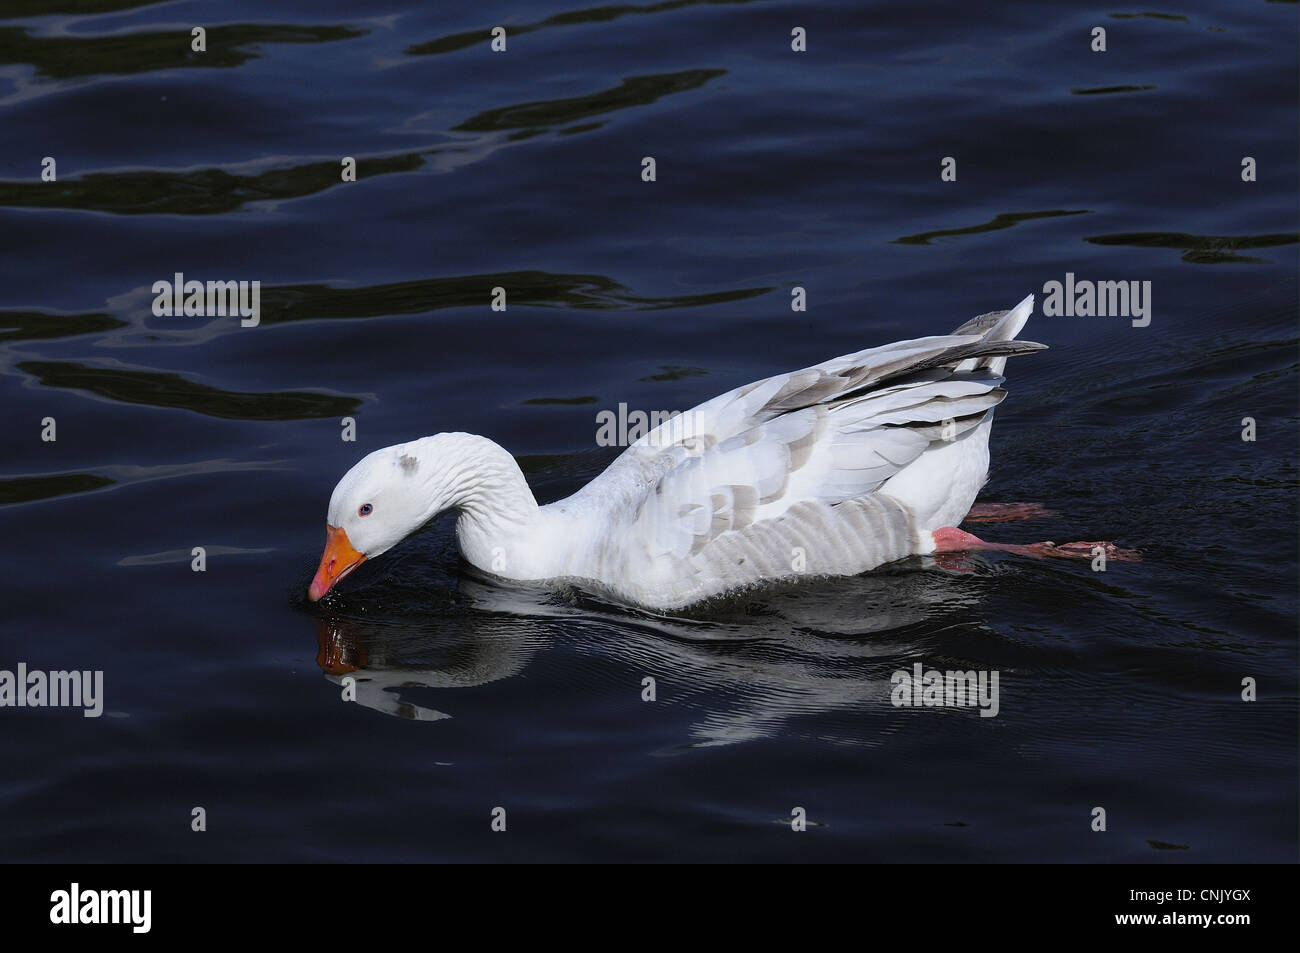 Domestic Goose, feral adult, swimming on river, River Thames, Oxfordshire, England, april - Stock Image